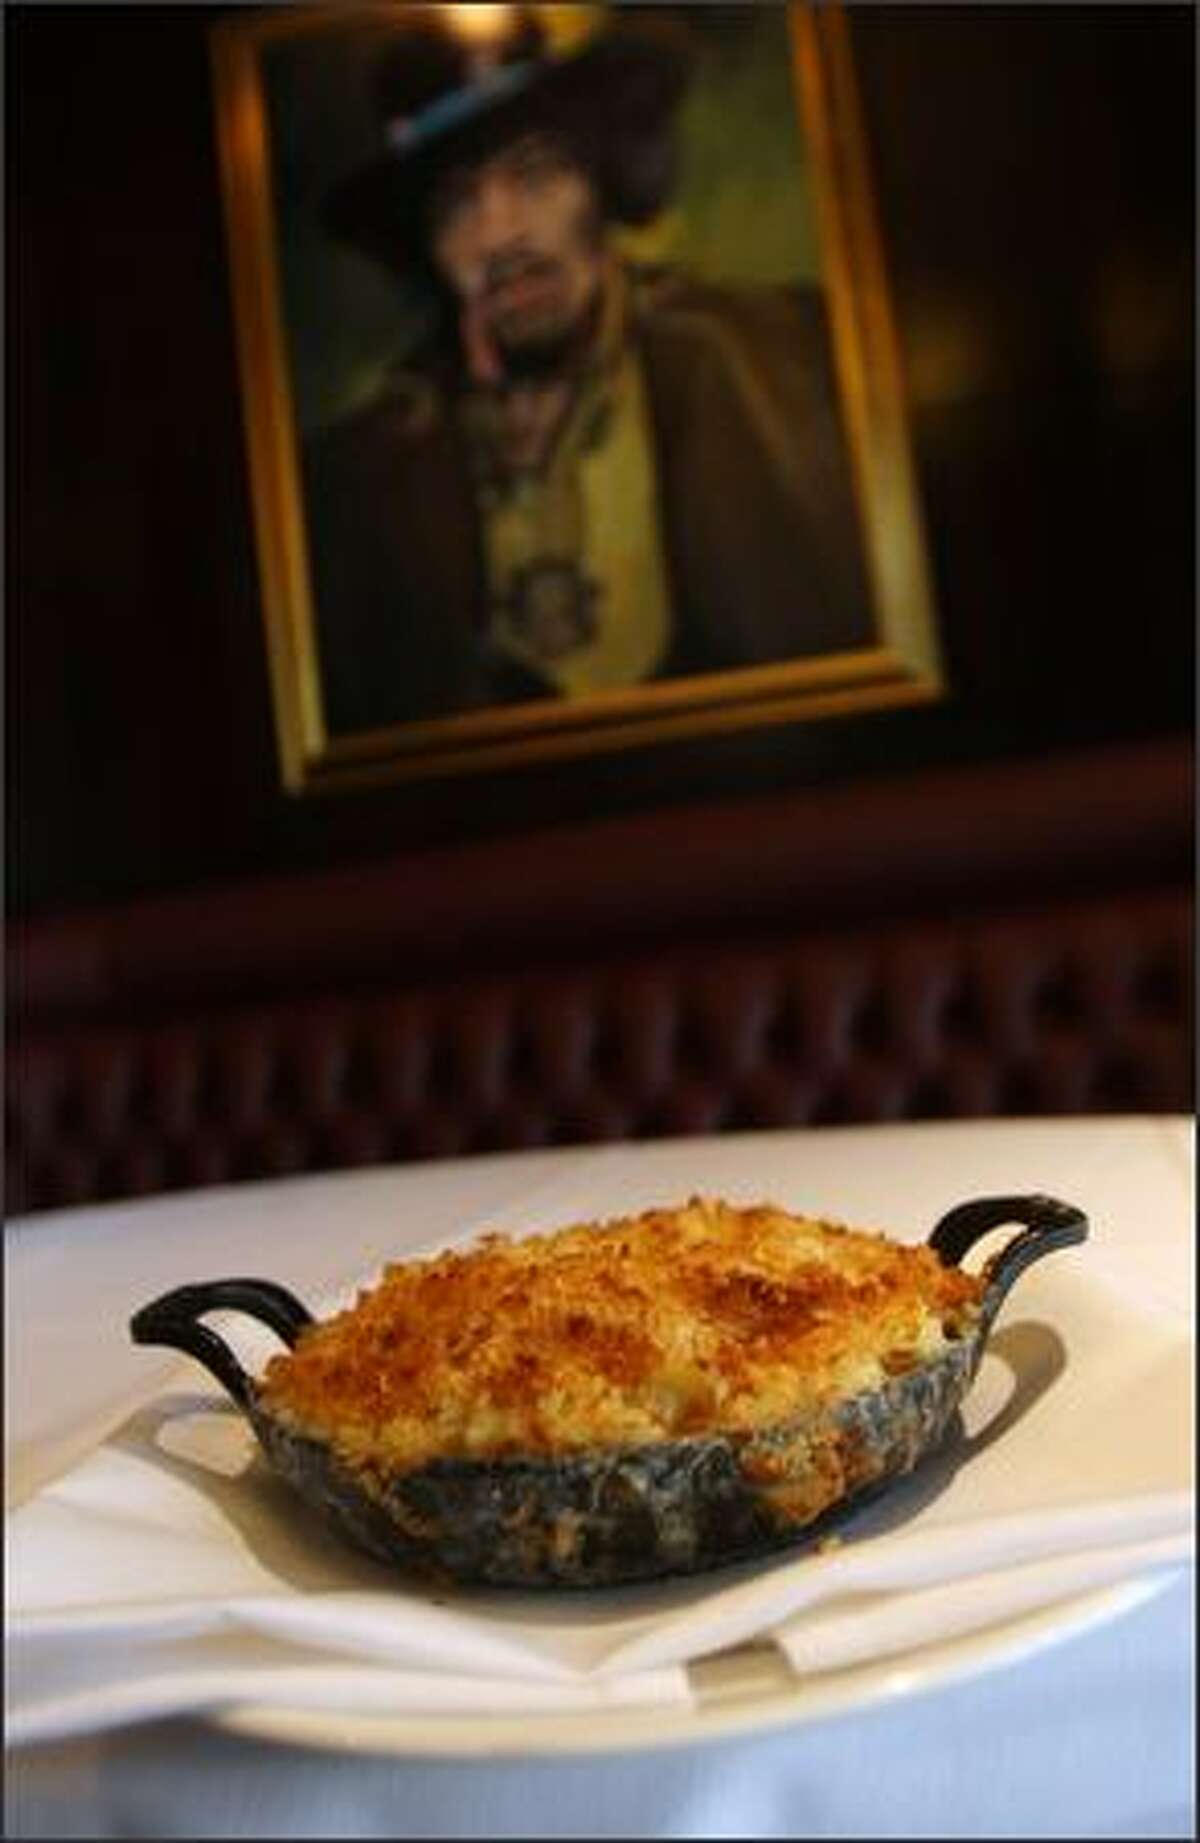 The Grille's lobster/pasta dish offers an outstanding rendition of mac-and-cheese with a trio of cheeses and plenty of lobster. A Jimi Hendrix portrait hangs in the background.